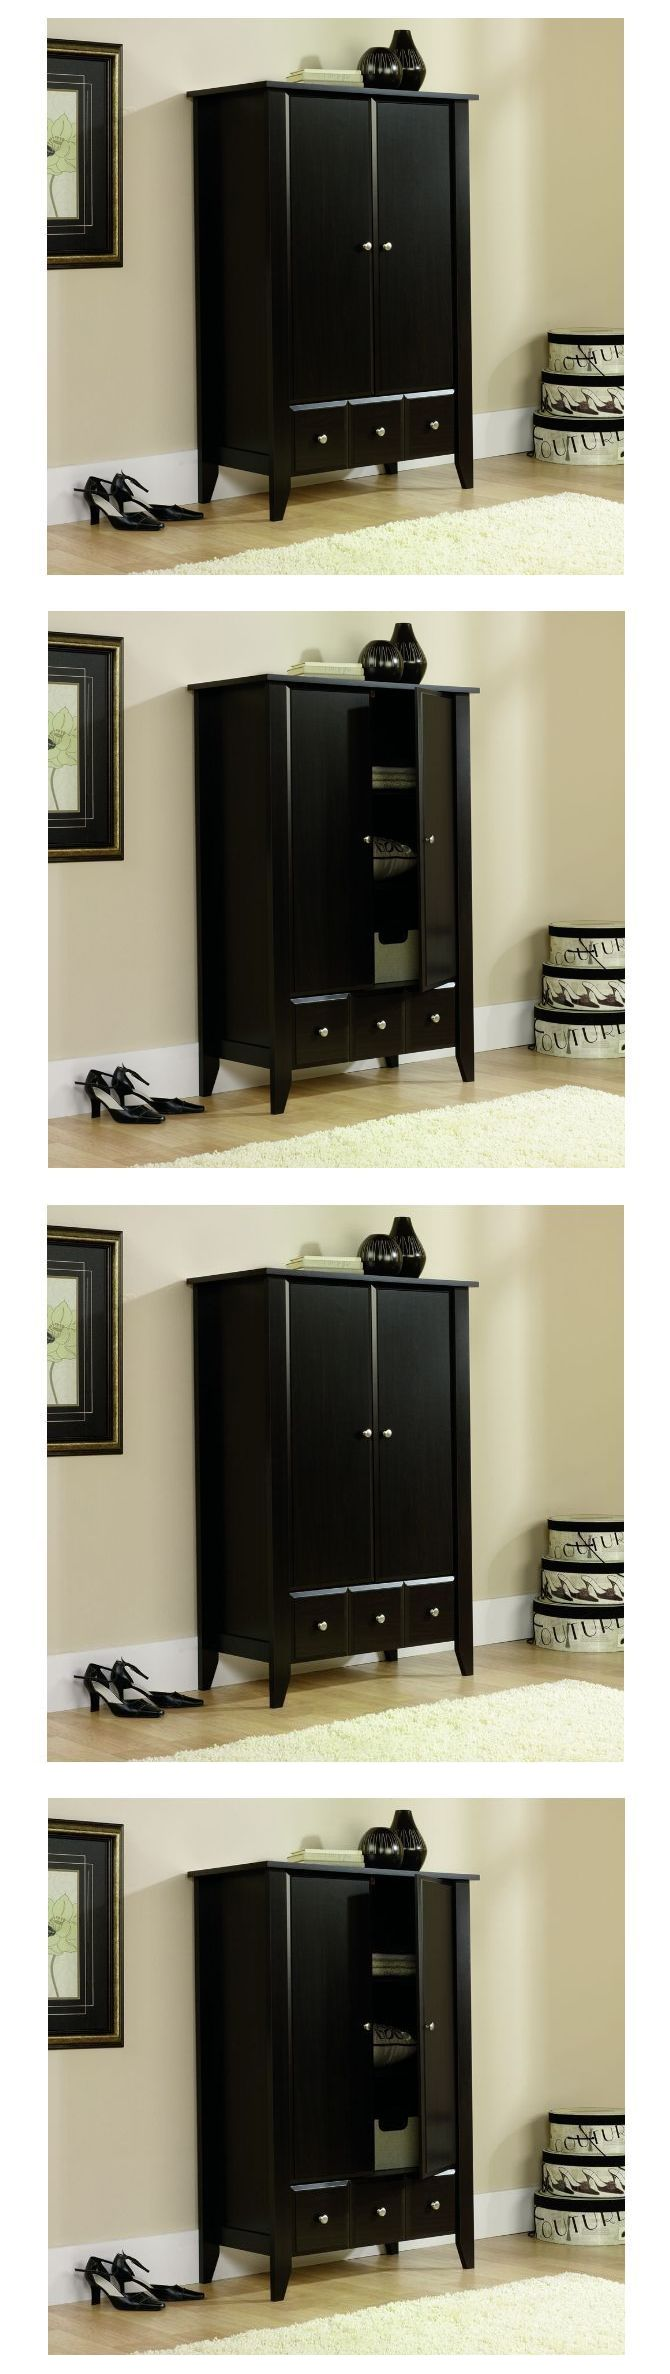 Armoires and Wardrobes 103430: Wardrobe Armoire For Clothes Bedroom Espresso Dresser Storage Large Furniture -> BUY IT NOW ONLY: $215.98 on eBay!